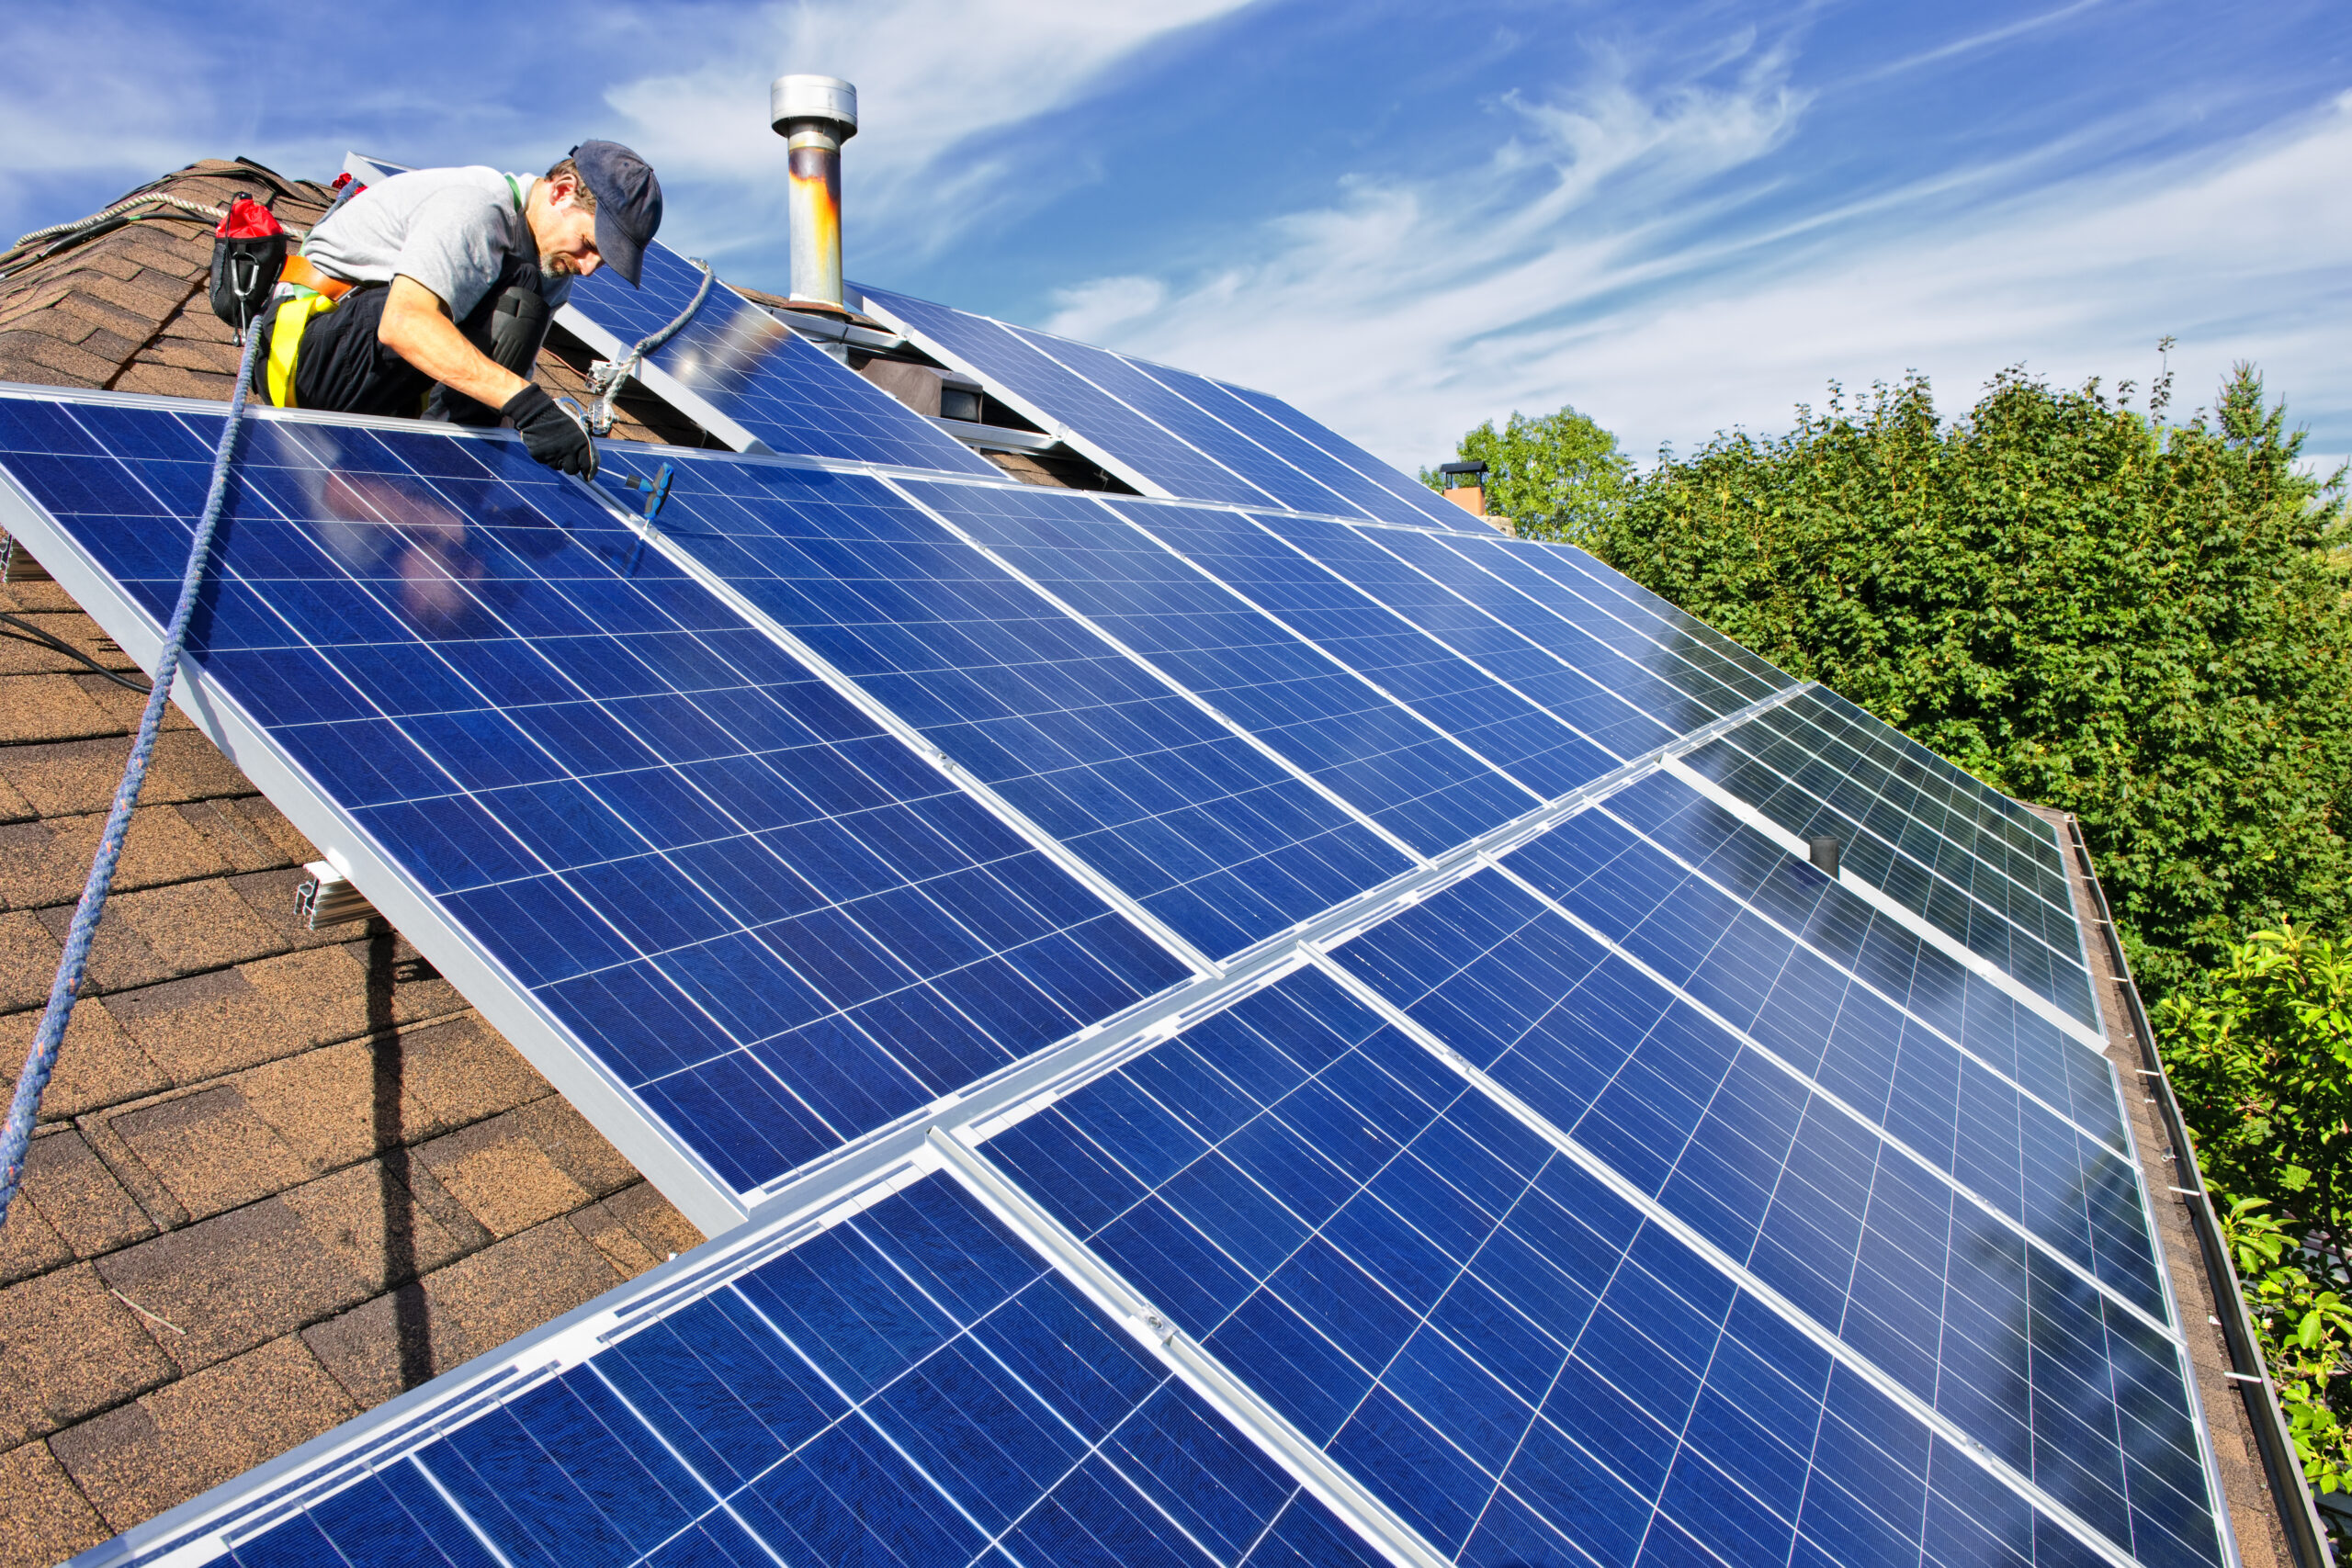 workers installing solar panel on a roof